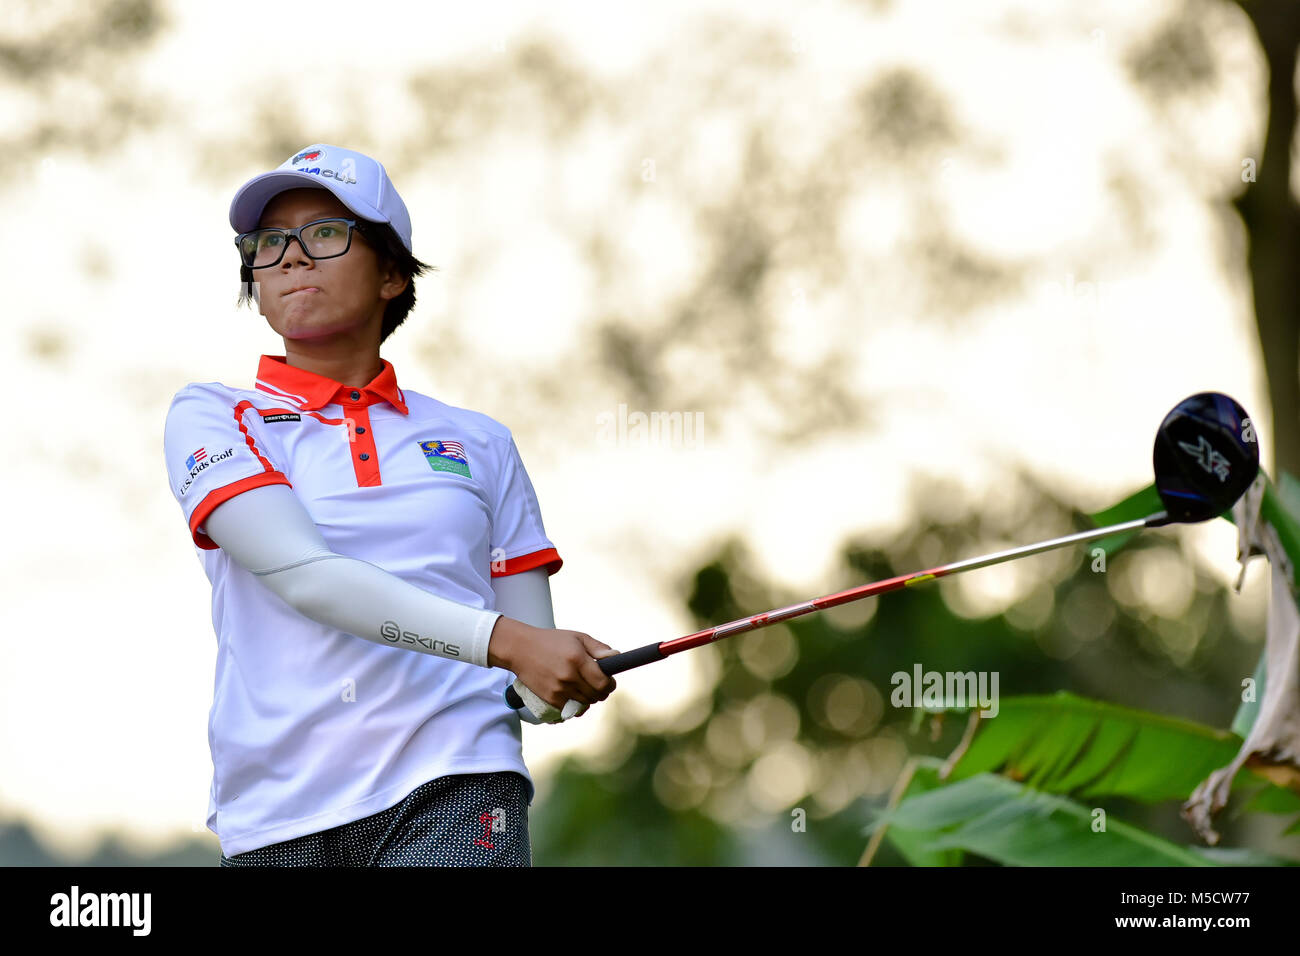 Danau, UKM Bangi - FEBRUARY 10: Eireen Syafeeya watches her tee shot on the 11th hole during Round One of the Danau - Stock Image